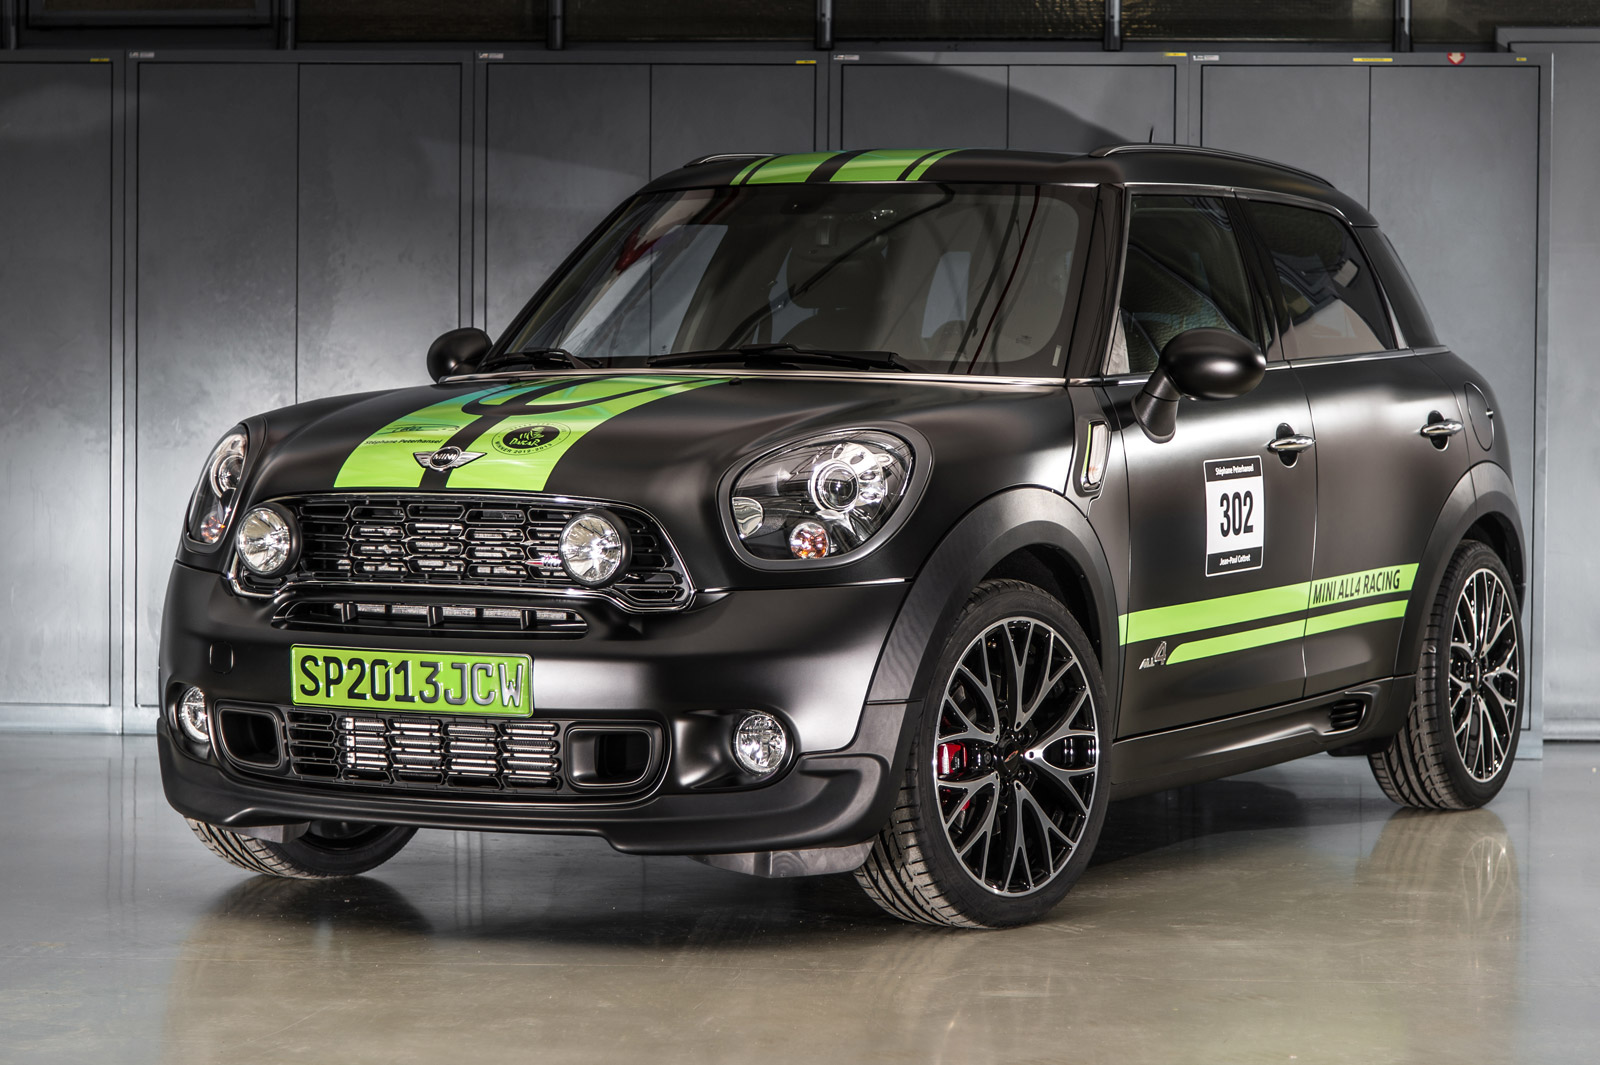 Mini Celebrates Dakar Win With Special Edition Jcw Countryman